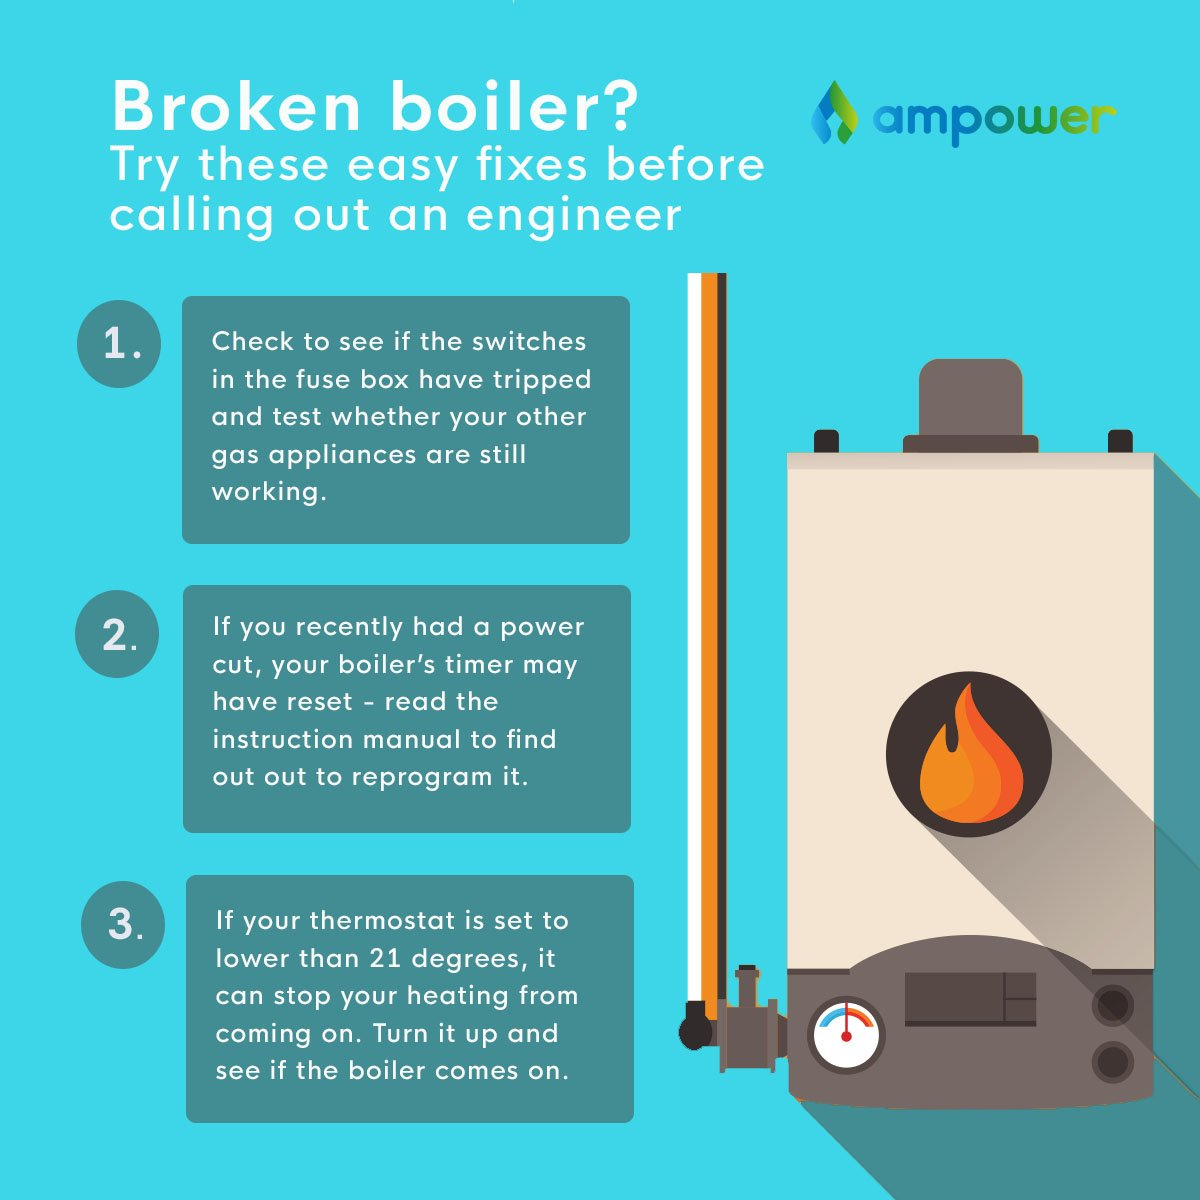 Ampower Is Your Boiler Not Working Before Calling Out Broken Fuse Box An Engineer Try These Useful Fixesbrokenboiler